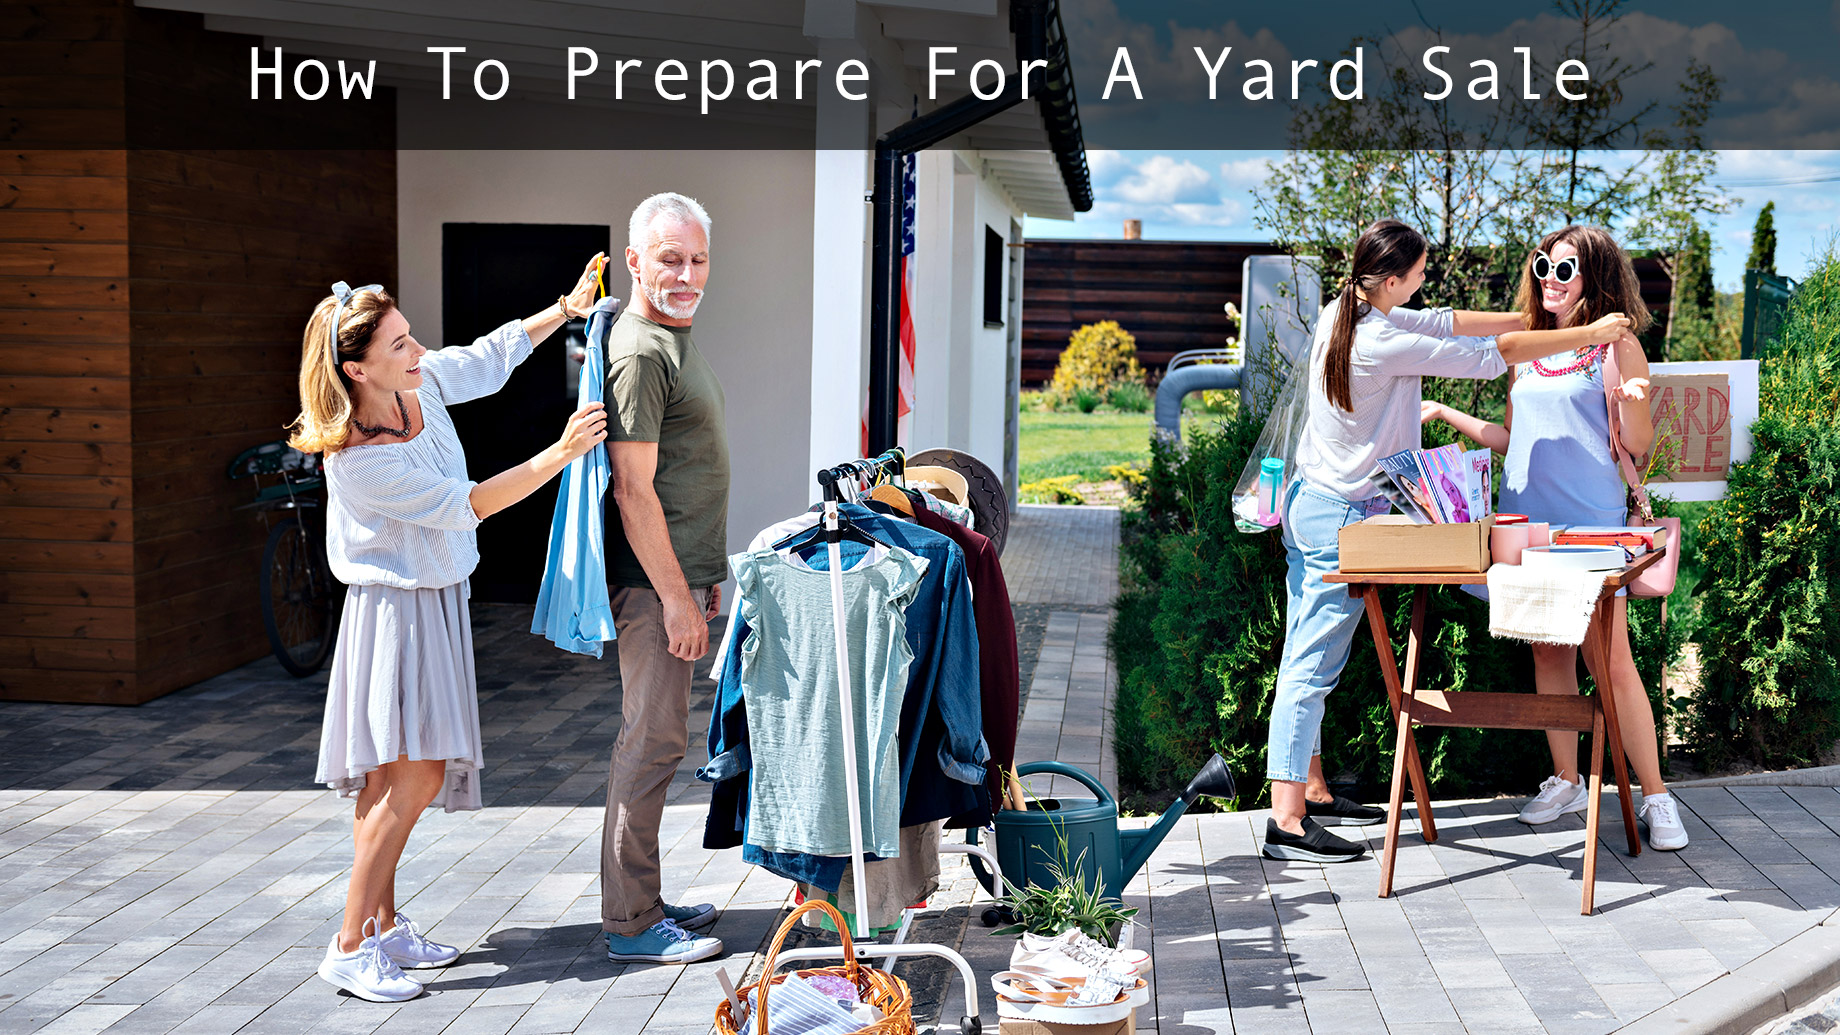 How to Prepare For A Yard Sale - Before, During, & After